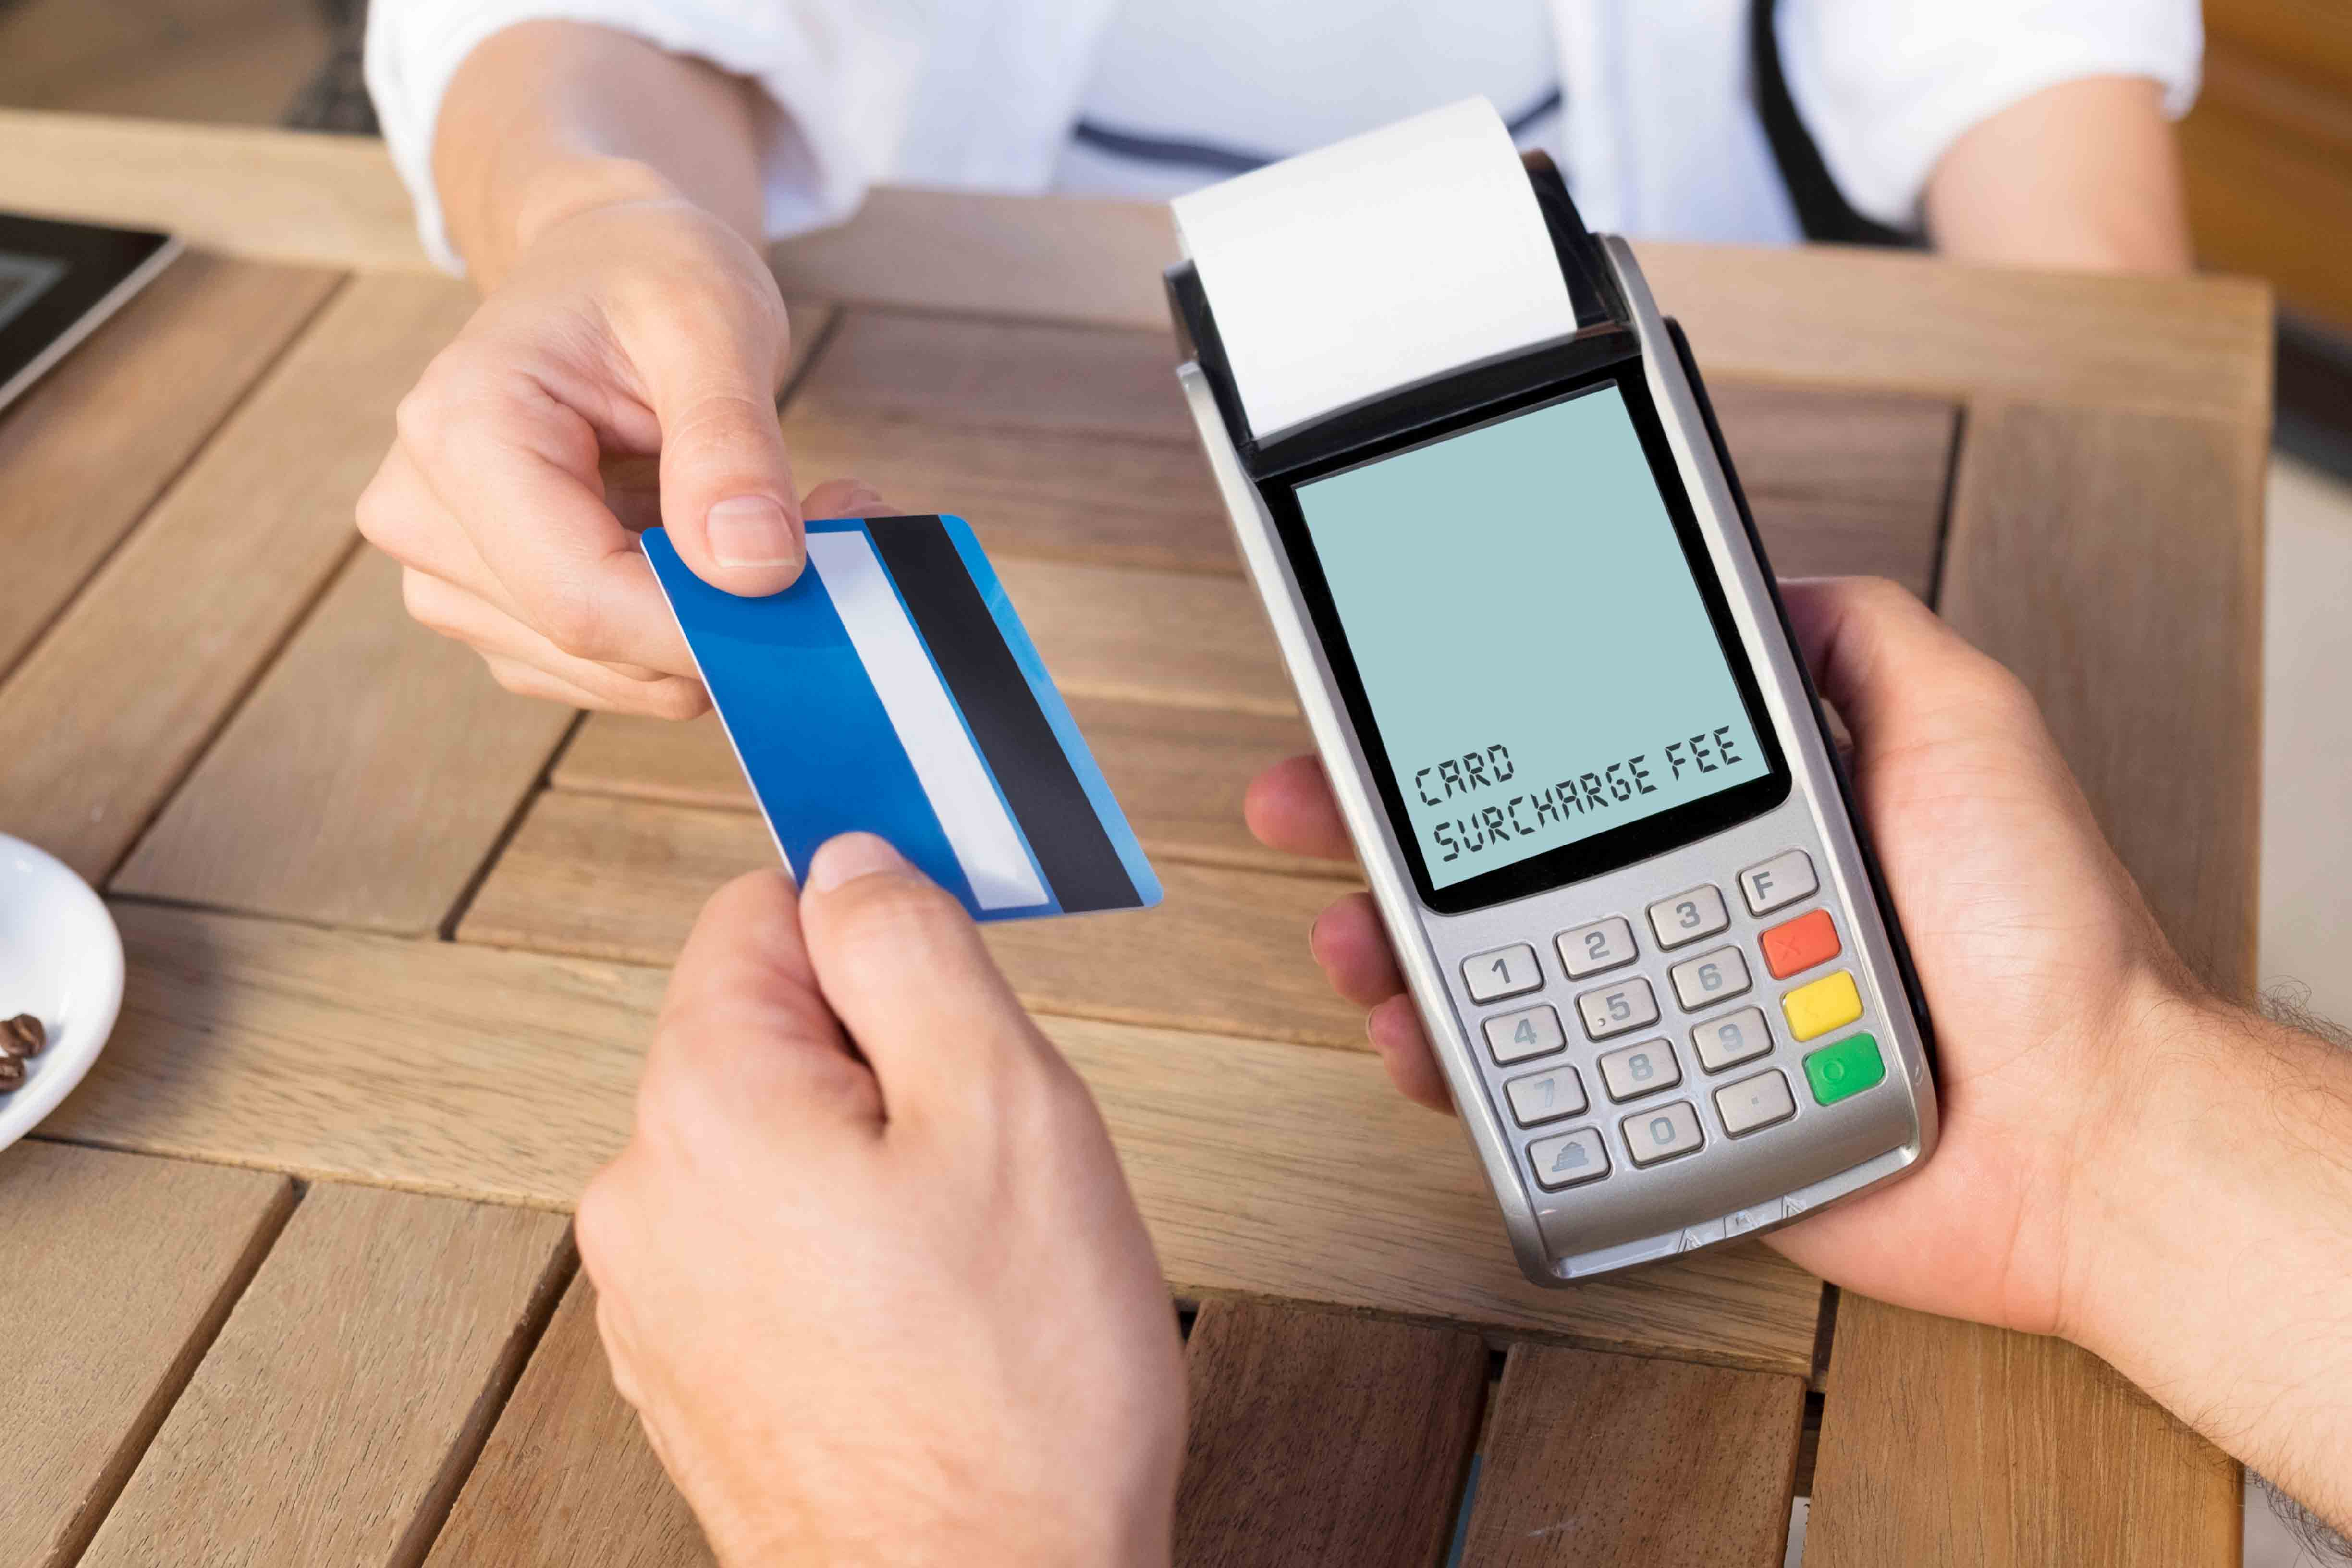 Card surcharge ban defeated in california for now national merchants card surcharge reheart Images